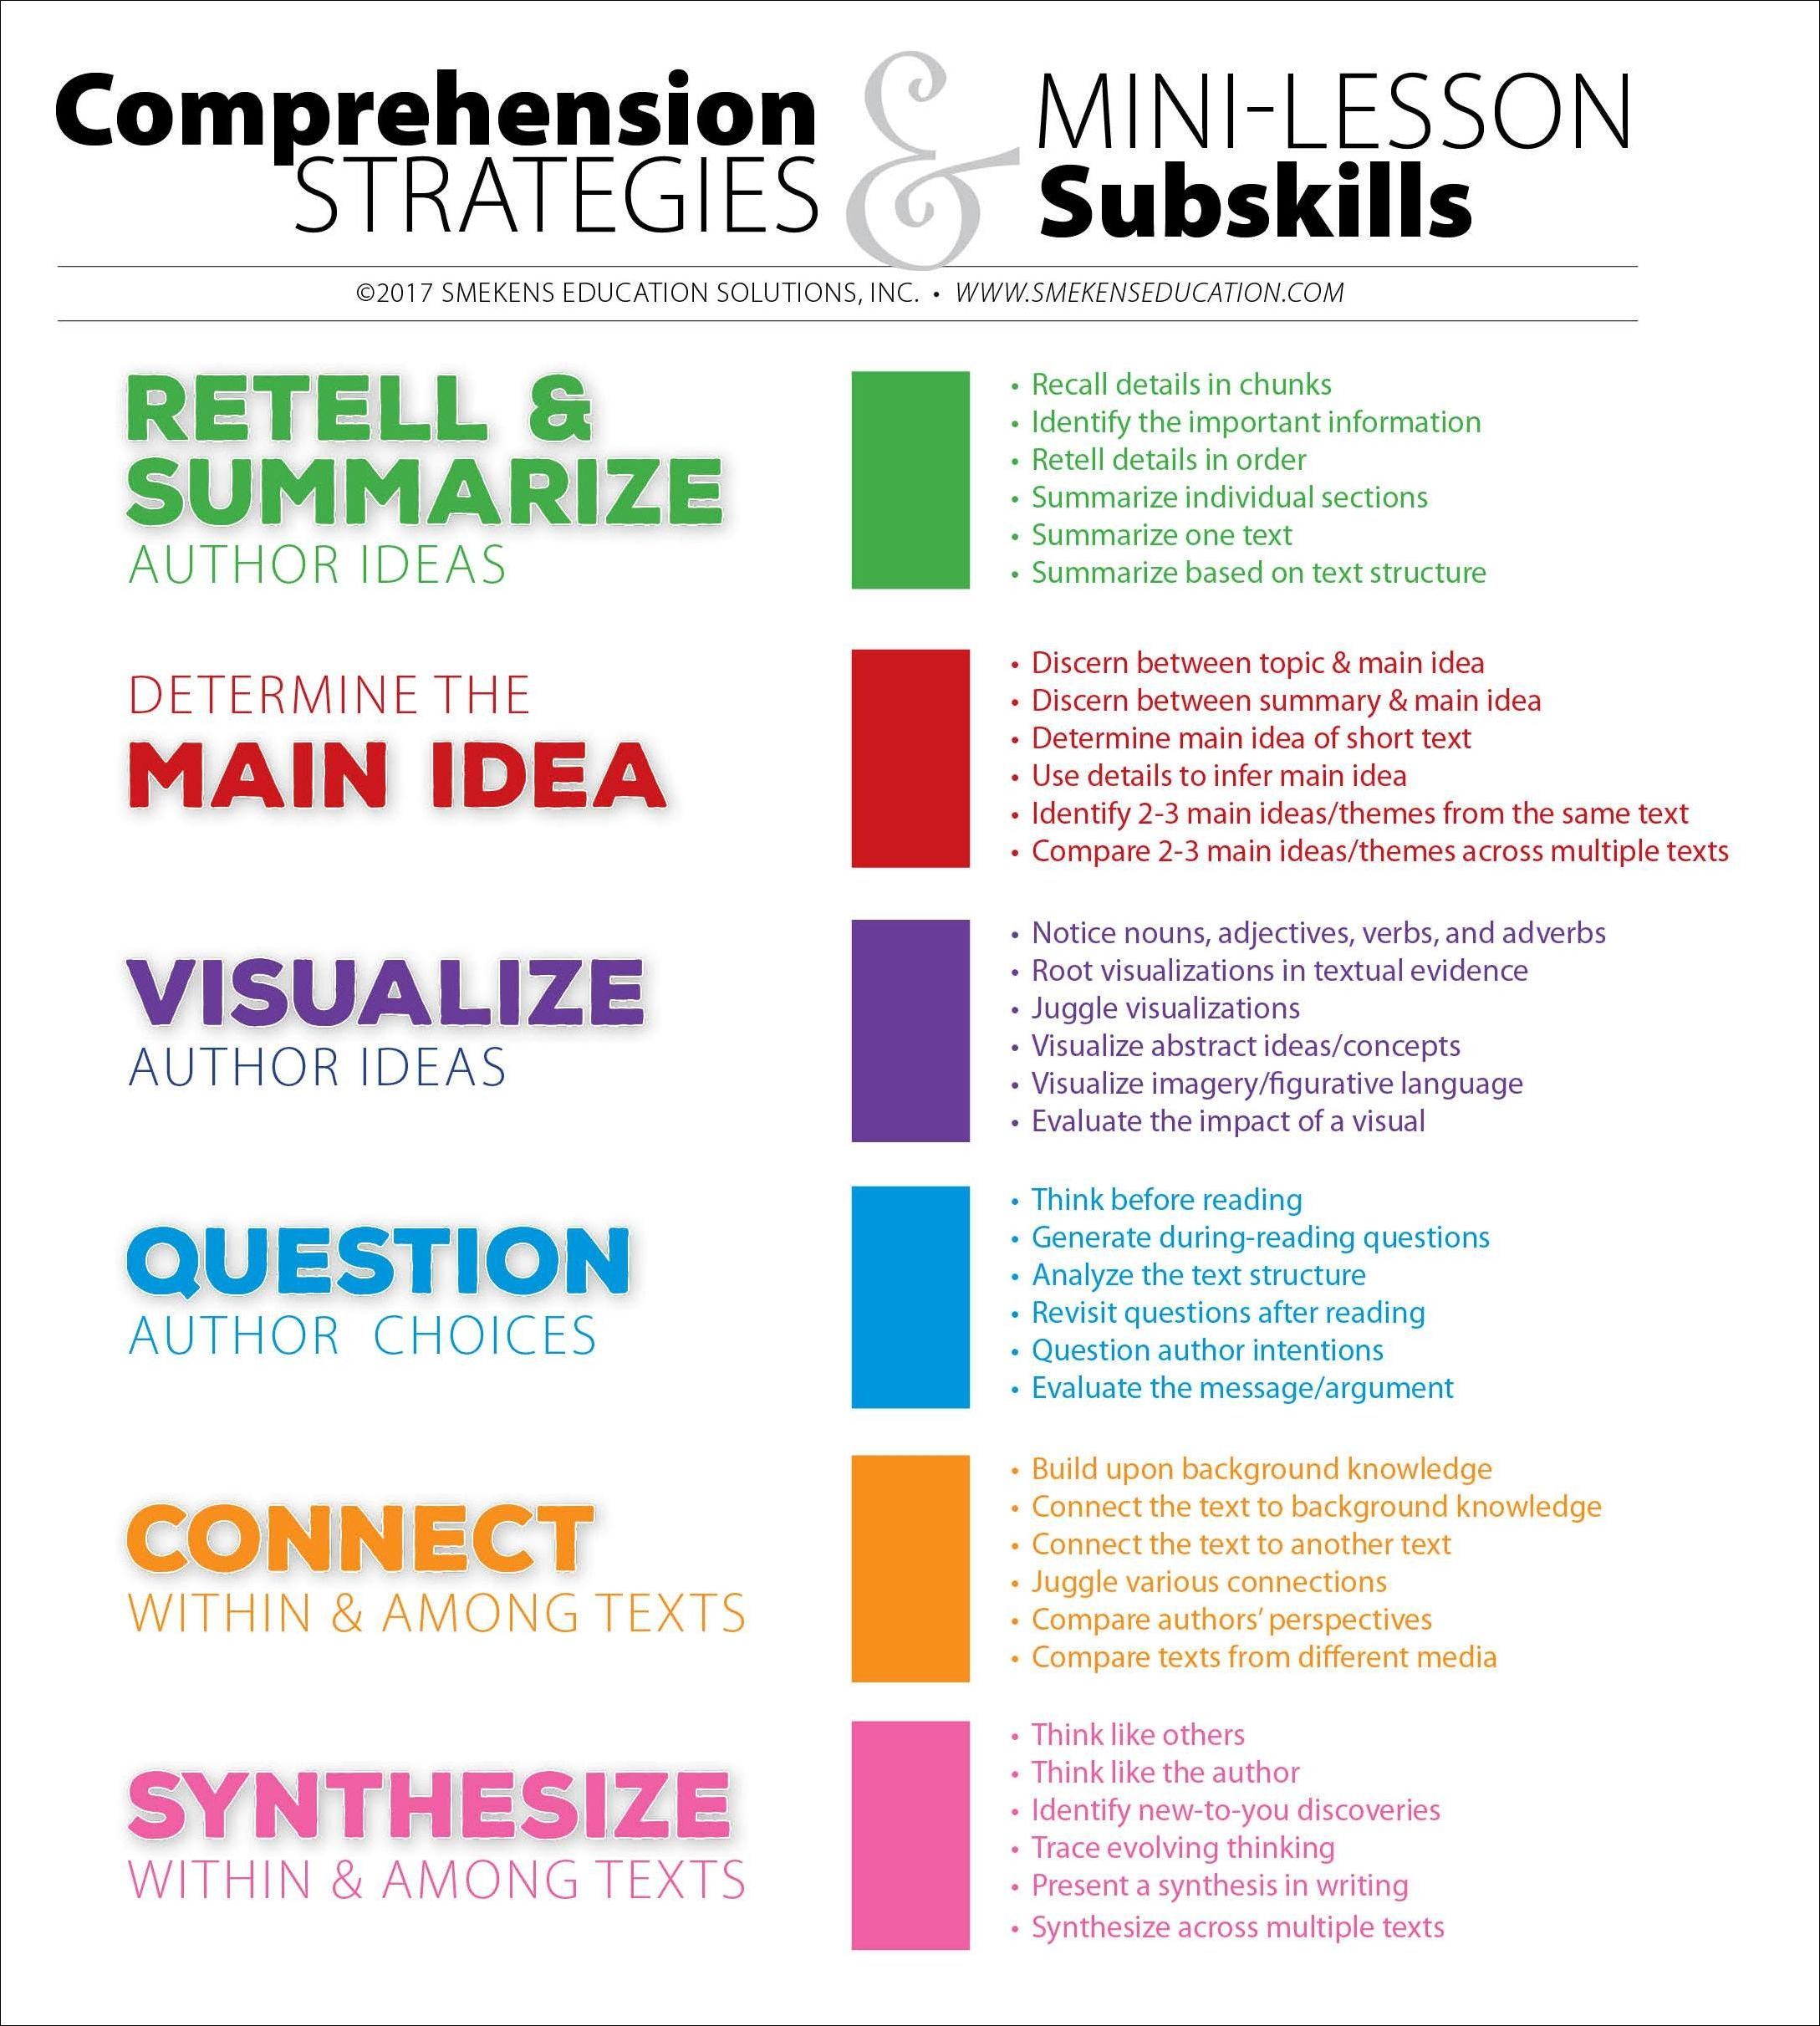 Comprehension Strategies Amp Mini Lesson Subskills